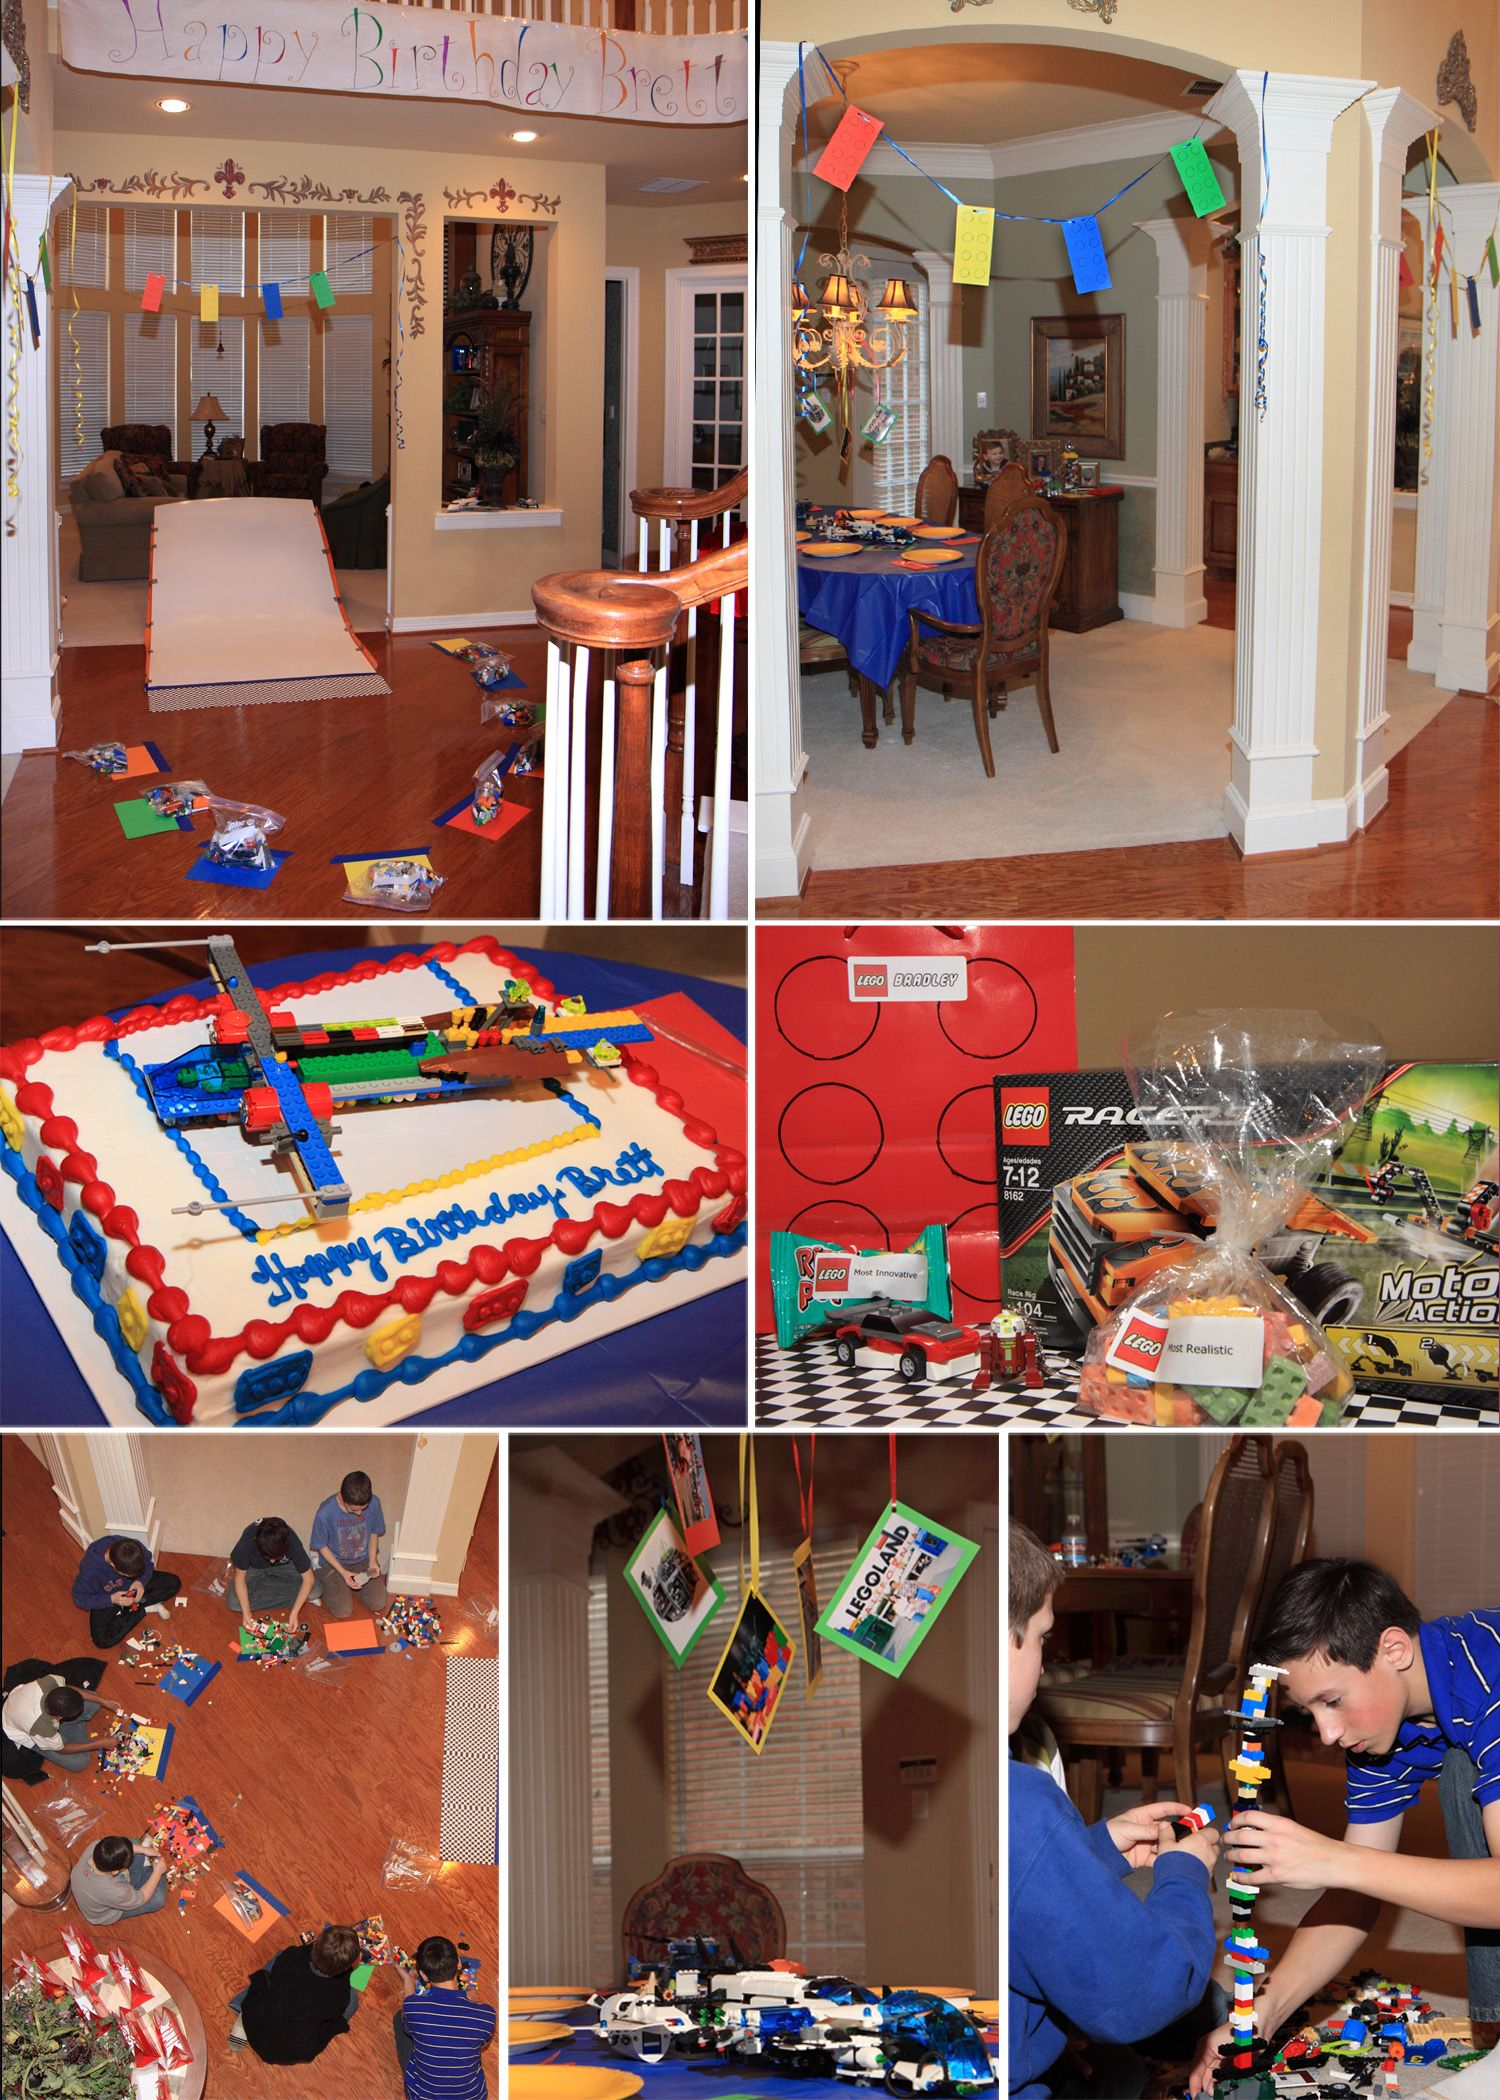 11 Year Old Boy Birthday Party Ideas